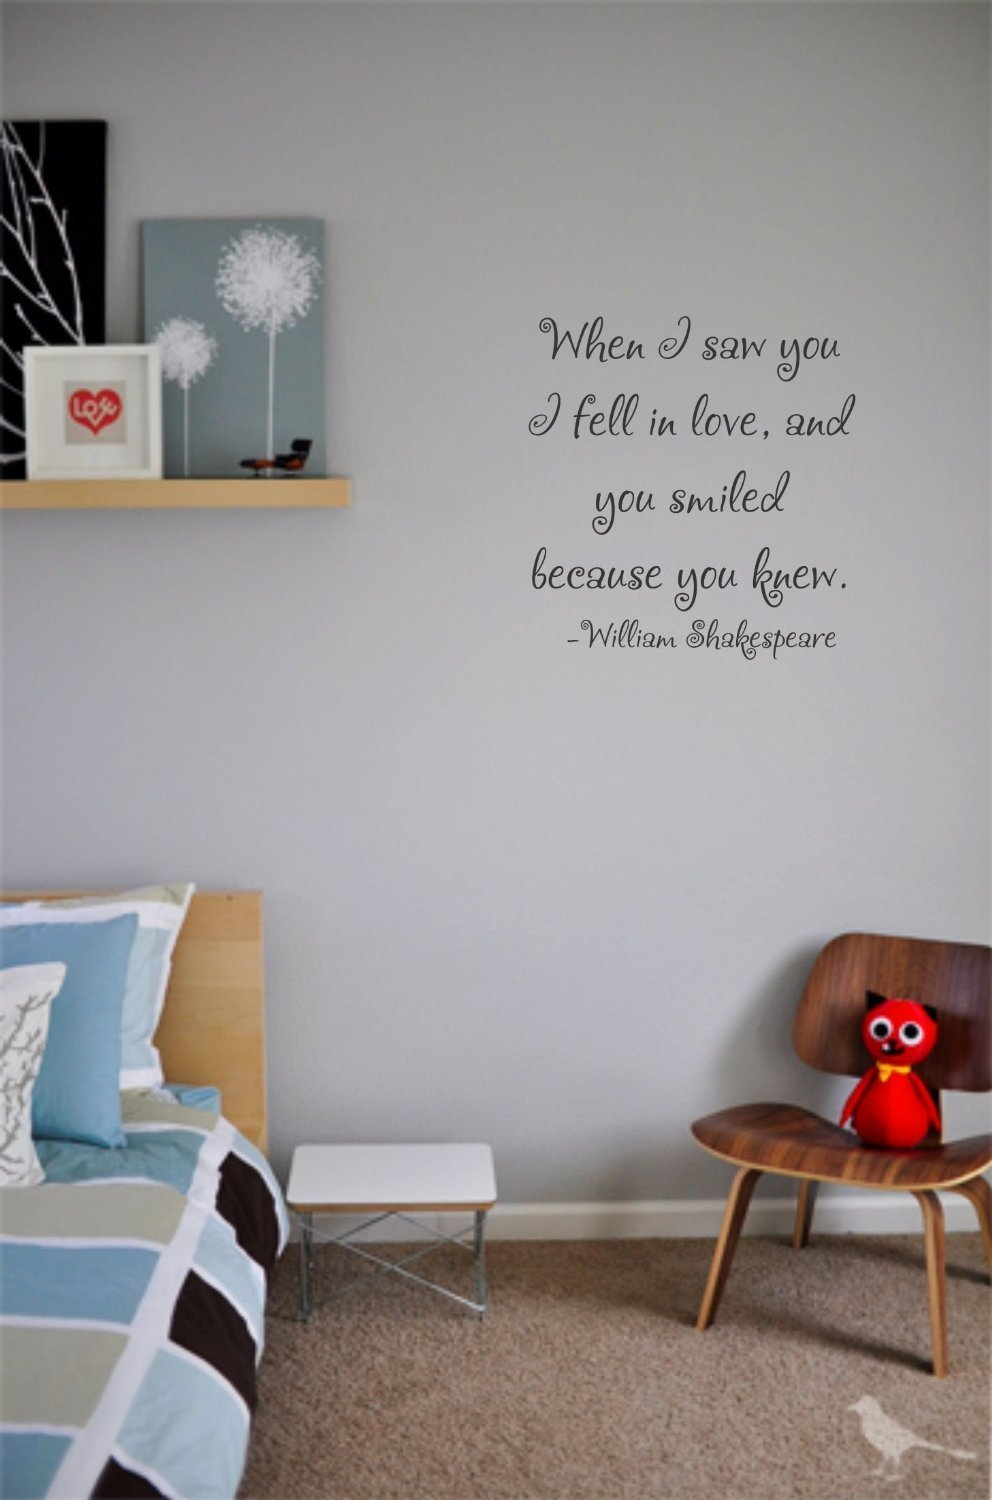 When I saw you I fell in love wall decal